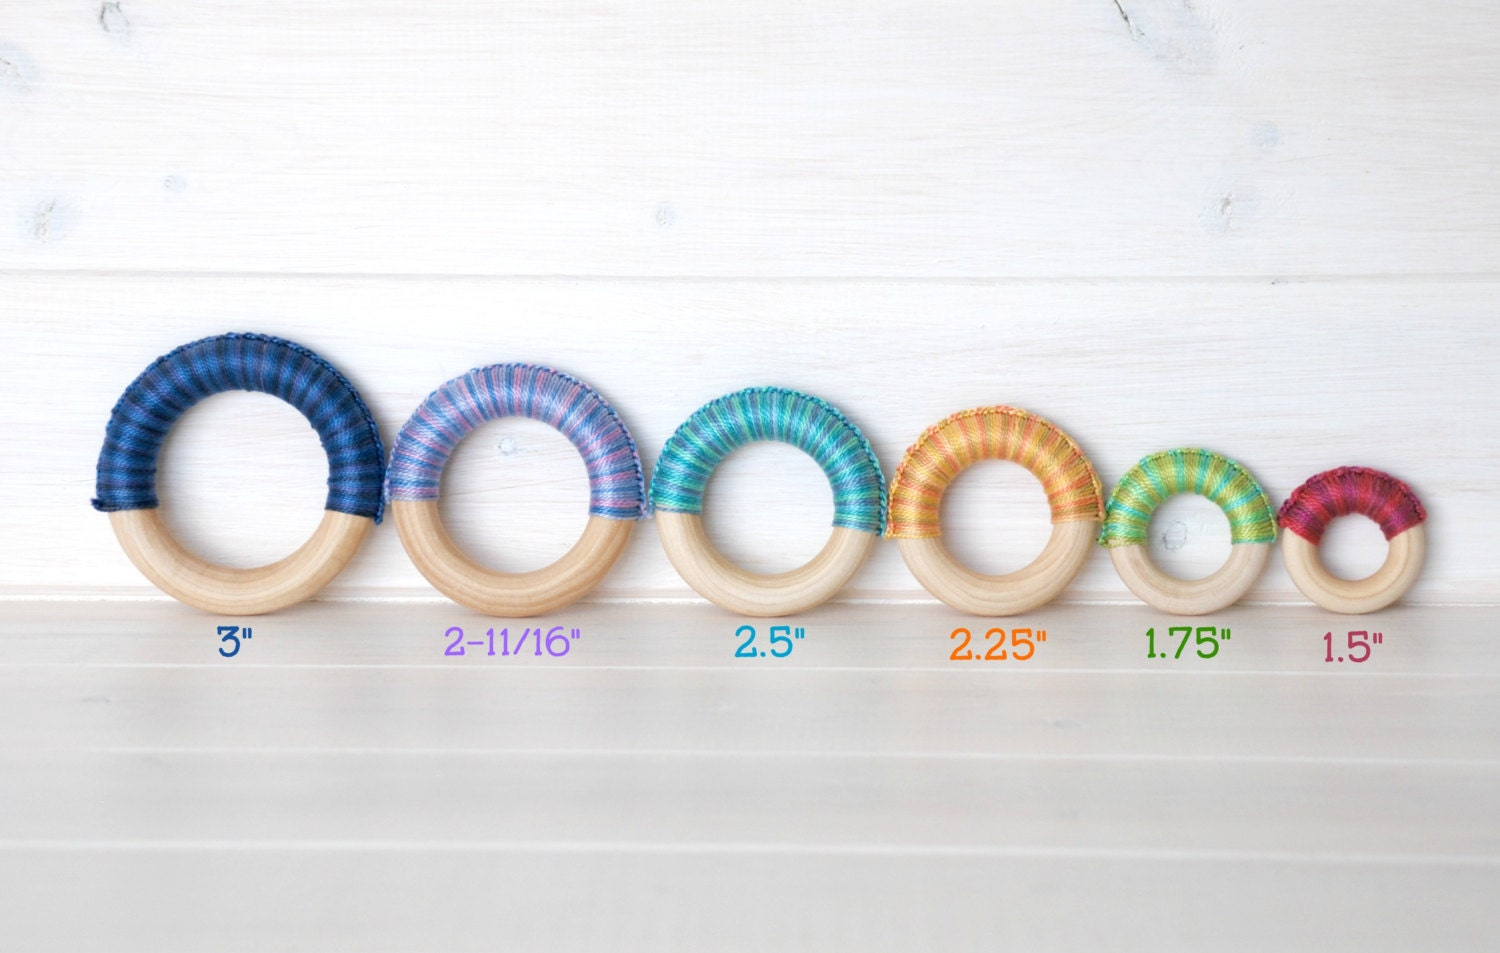 5 wood rings large wooden rings 3 wood rings 75mm for Wooden rings for crafts